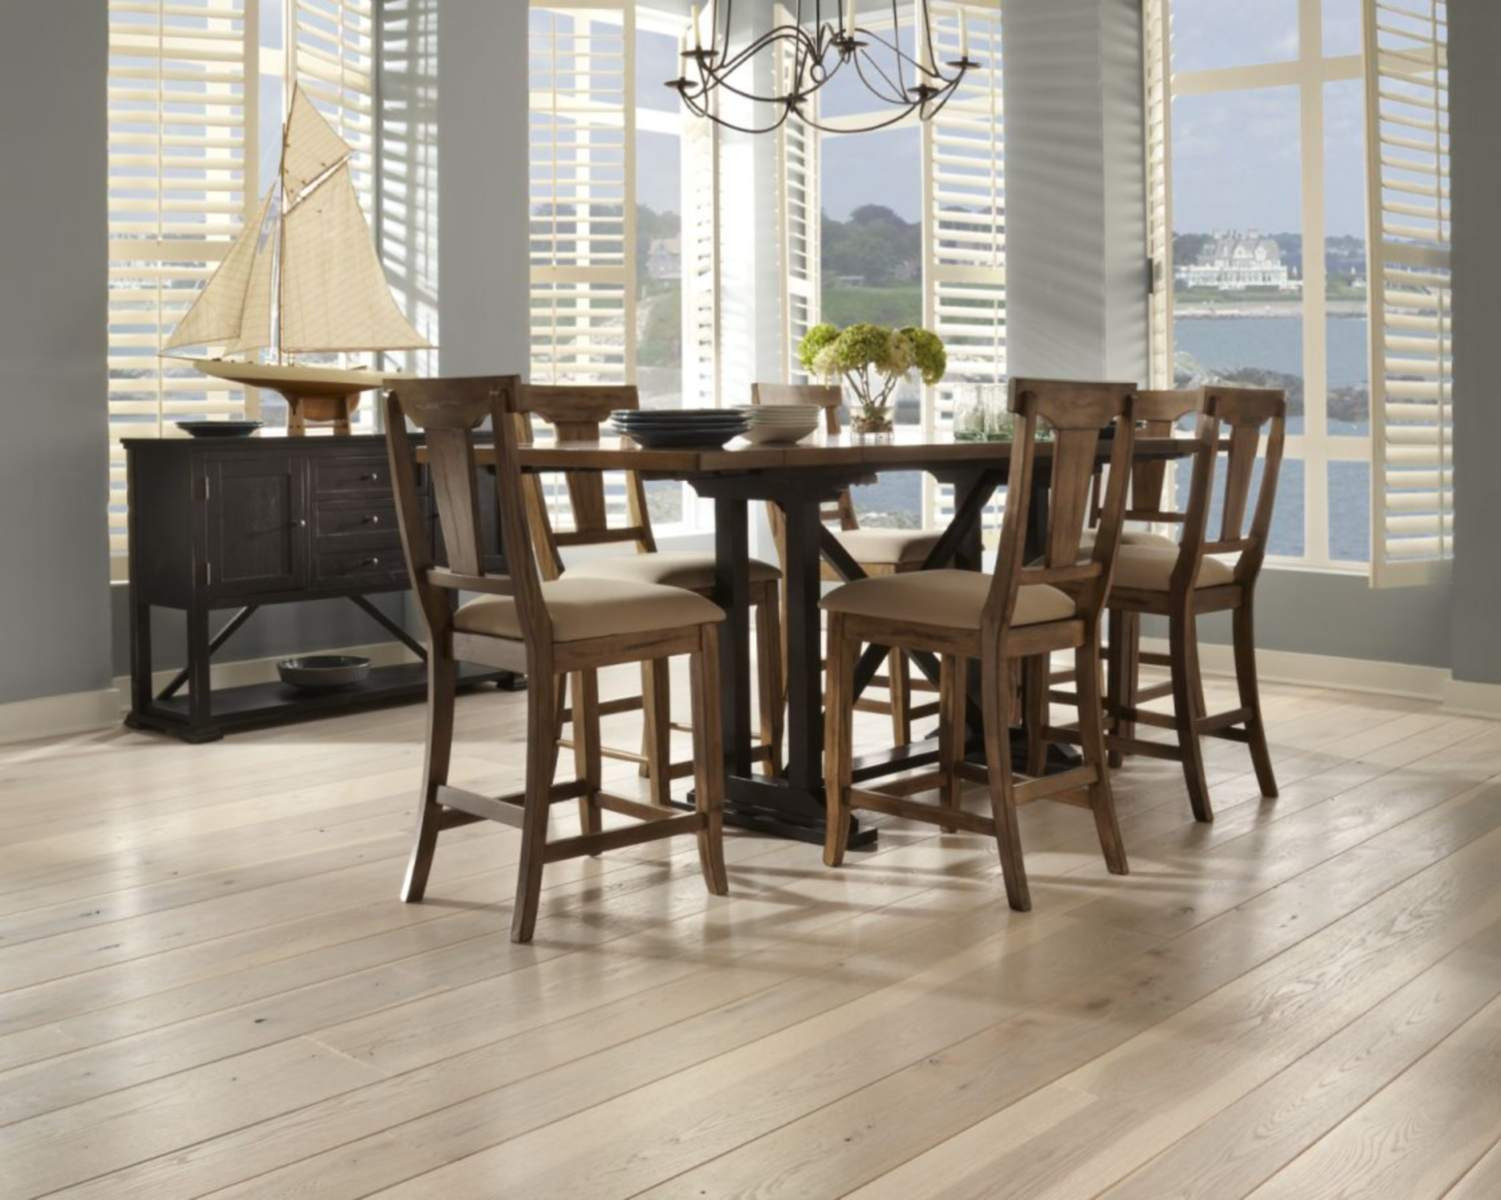 1 4 inch engineered hardwood flooring of top 5 brands for solid hardwood flooring with a dining room with carlisle hickorys wide plank flooring